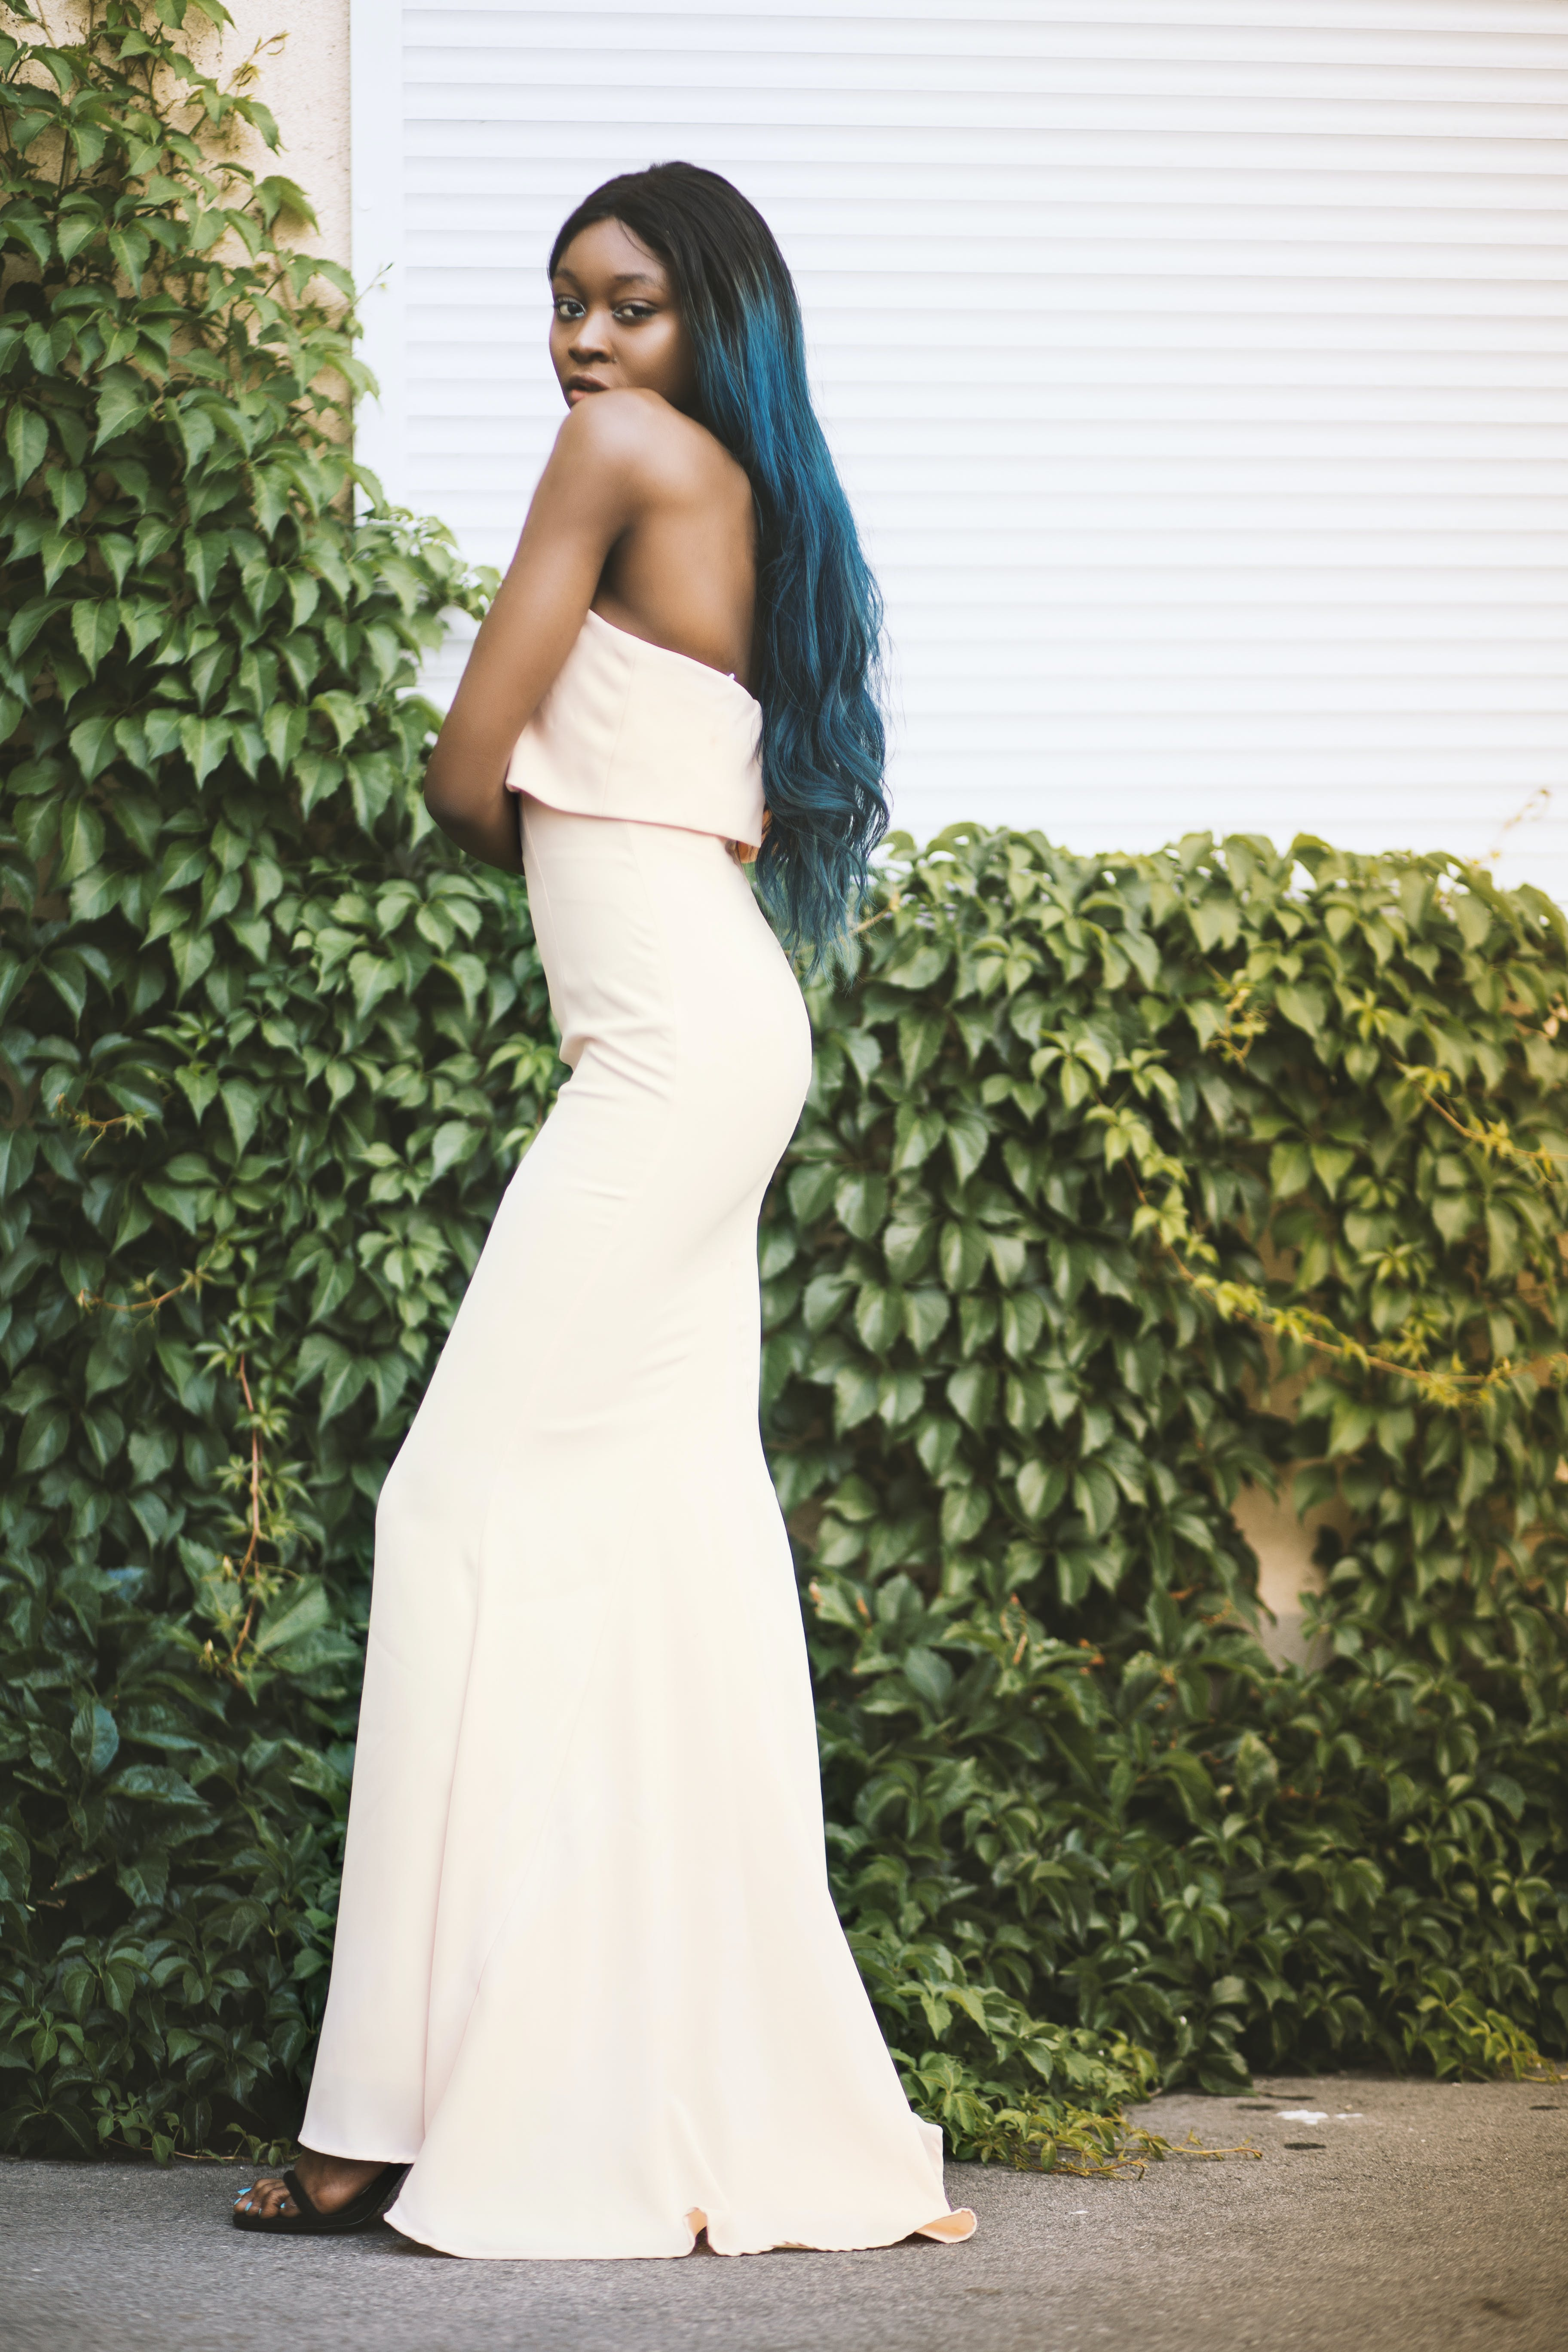 Woman Wearing White Strapless Long Dress Standing Beside Green Plants Hanged on Wall